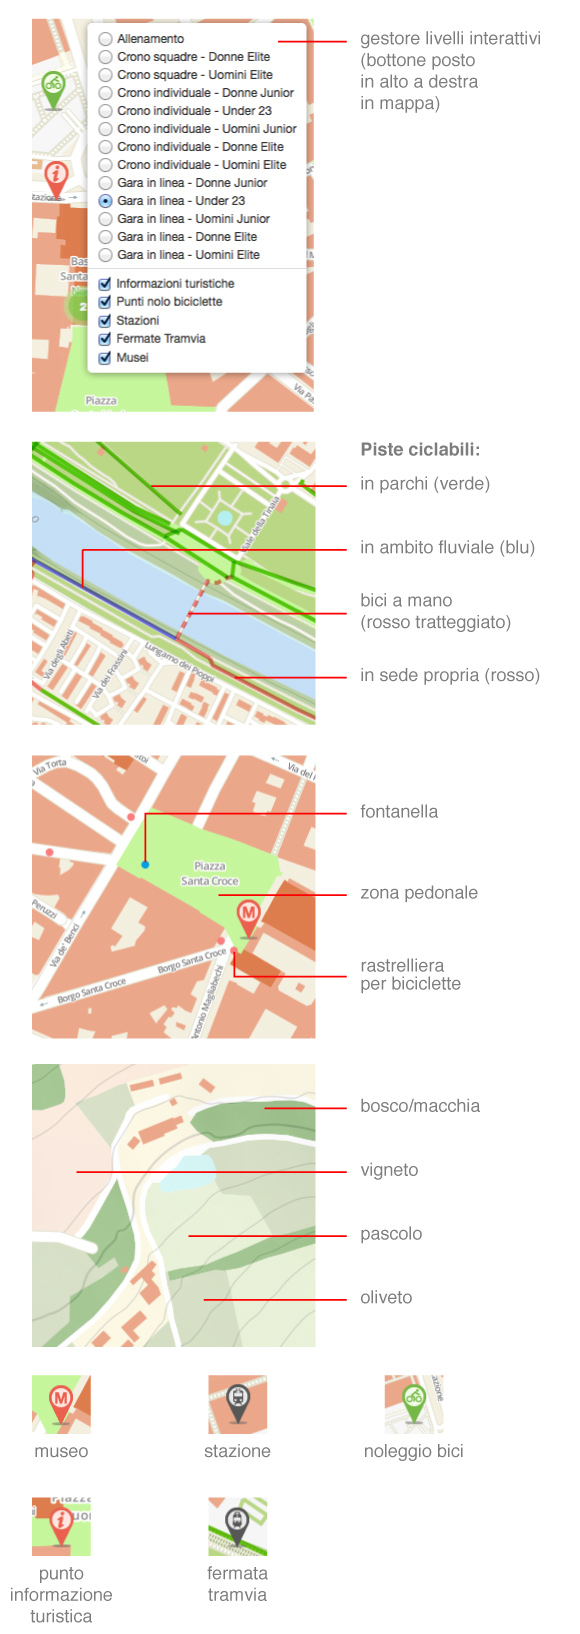 legenda mappa firenze in bicicletta